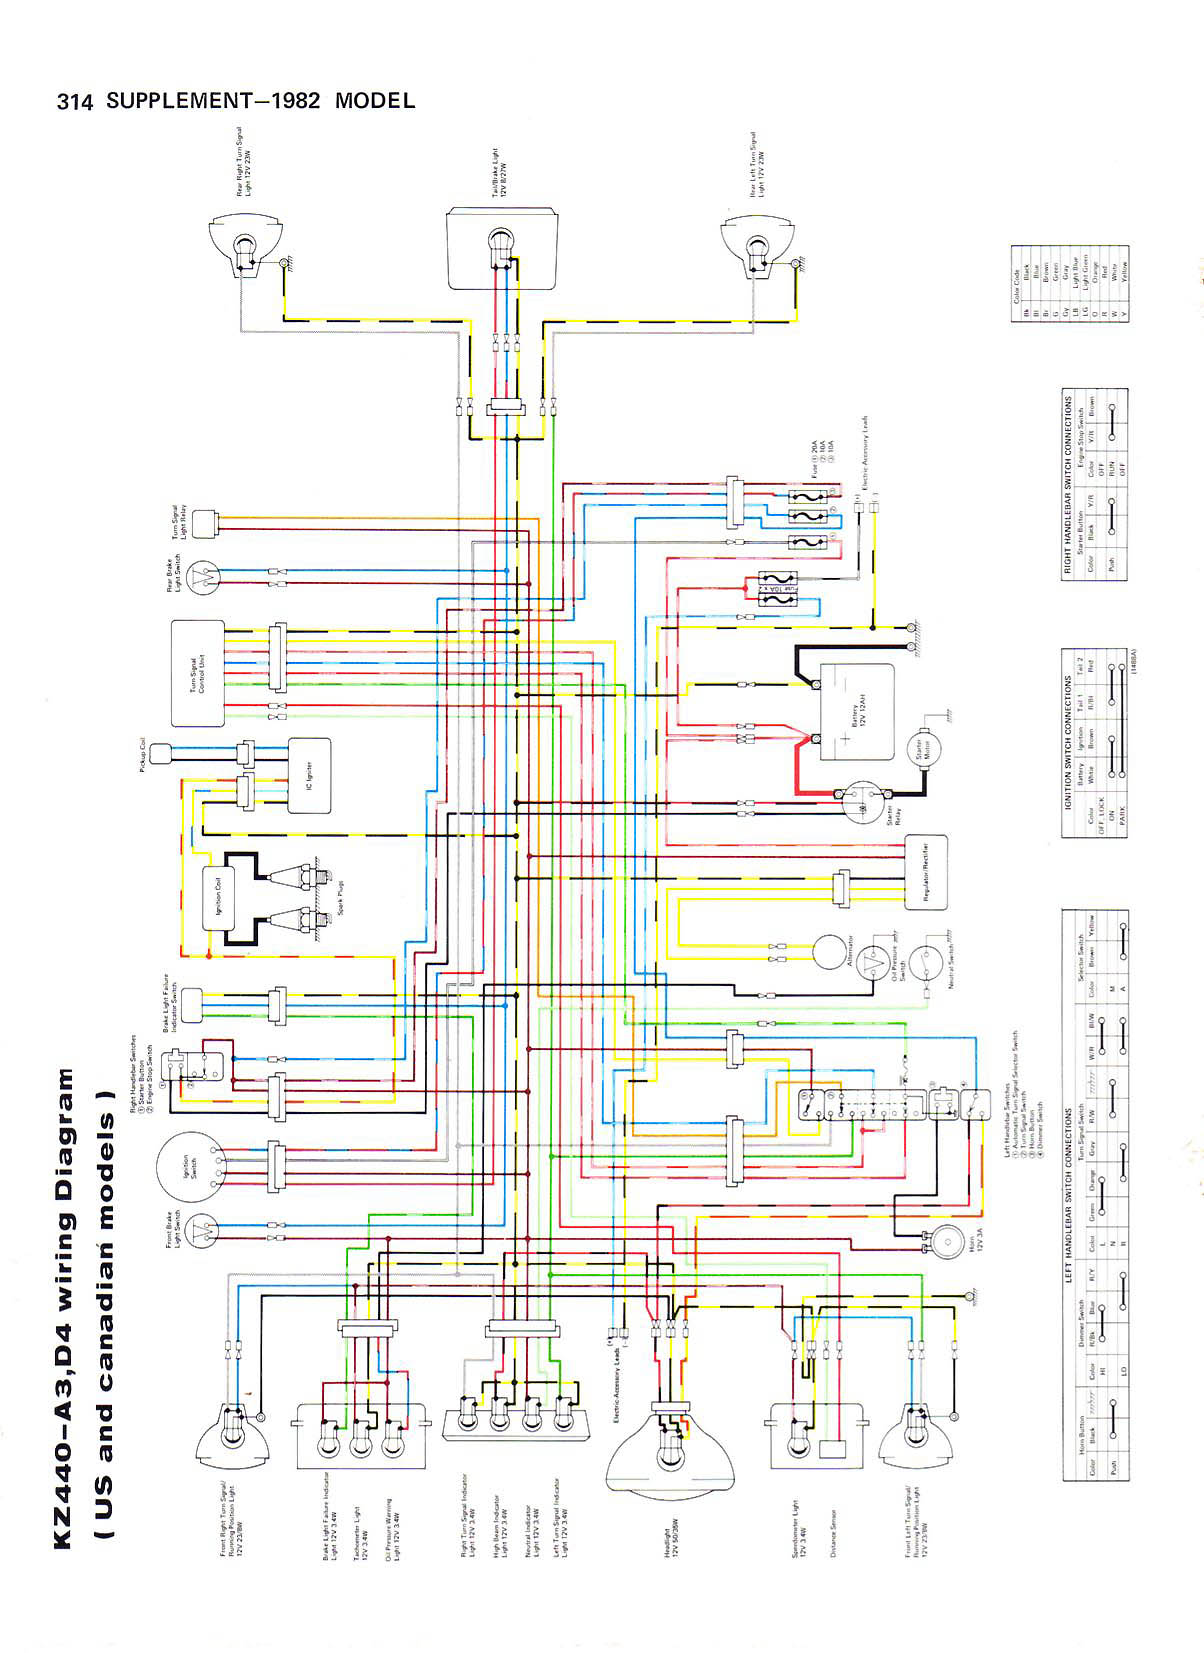 Kawasaki KZ 440 %2780 a %2782 Service Manual_Page_311 index of kz440 wiring diagrams 1980 kawasaki 440 ltd wiring diagram at bayanpartner.co